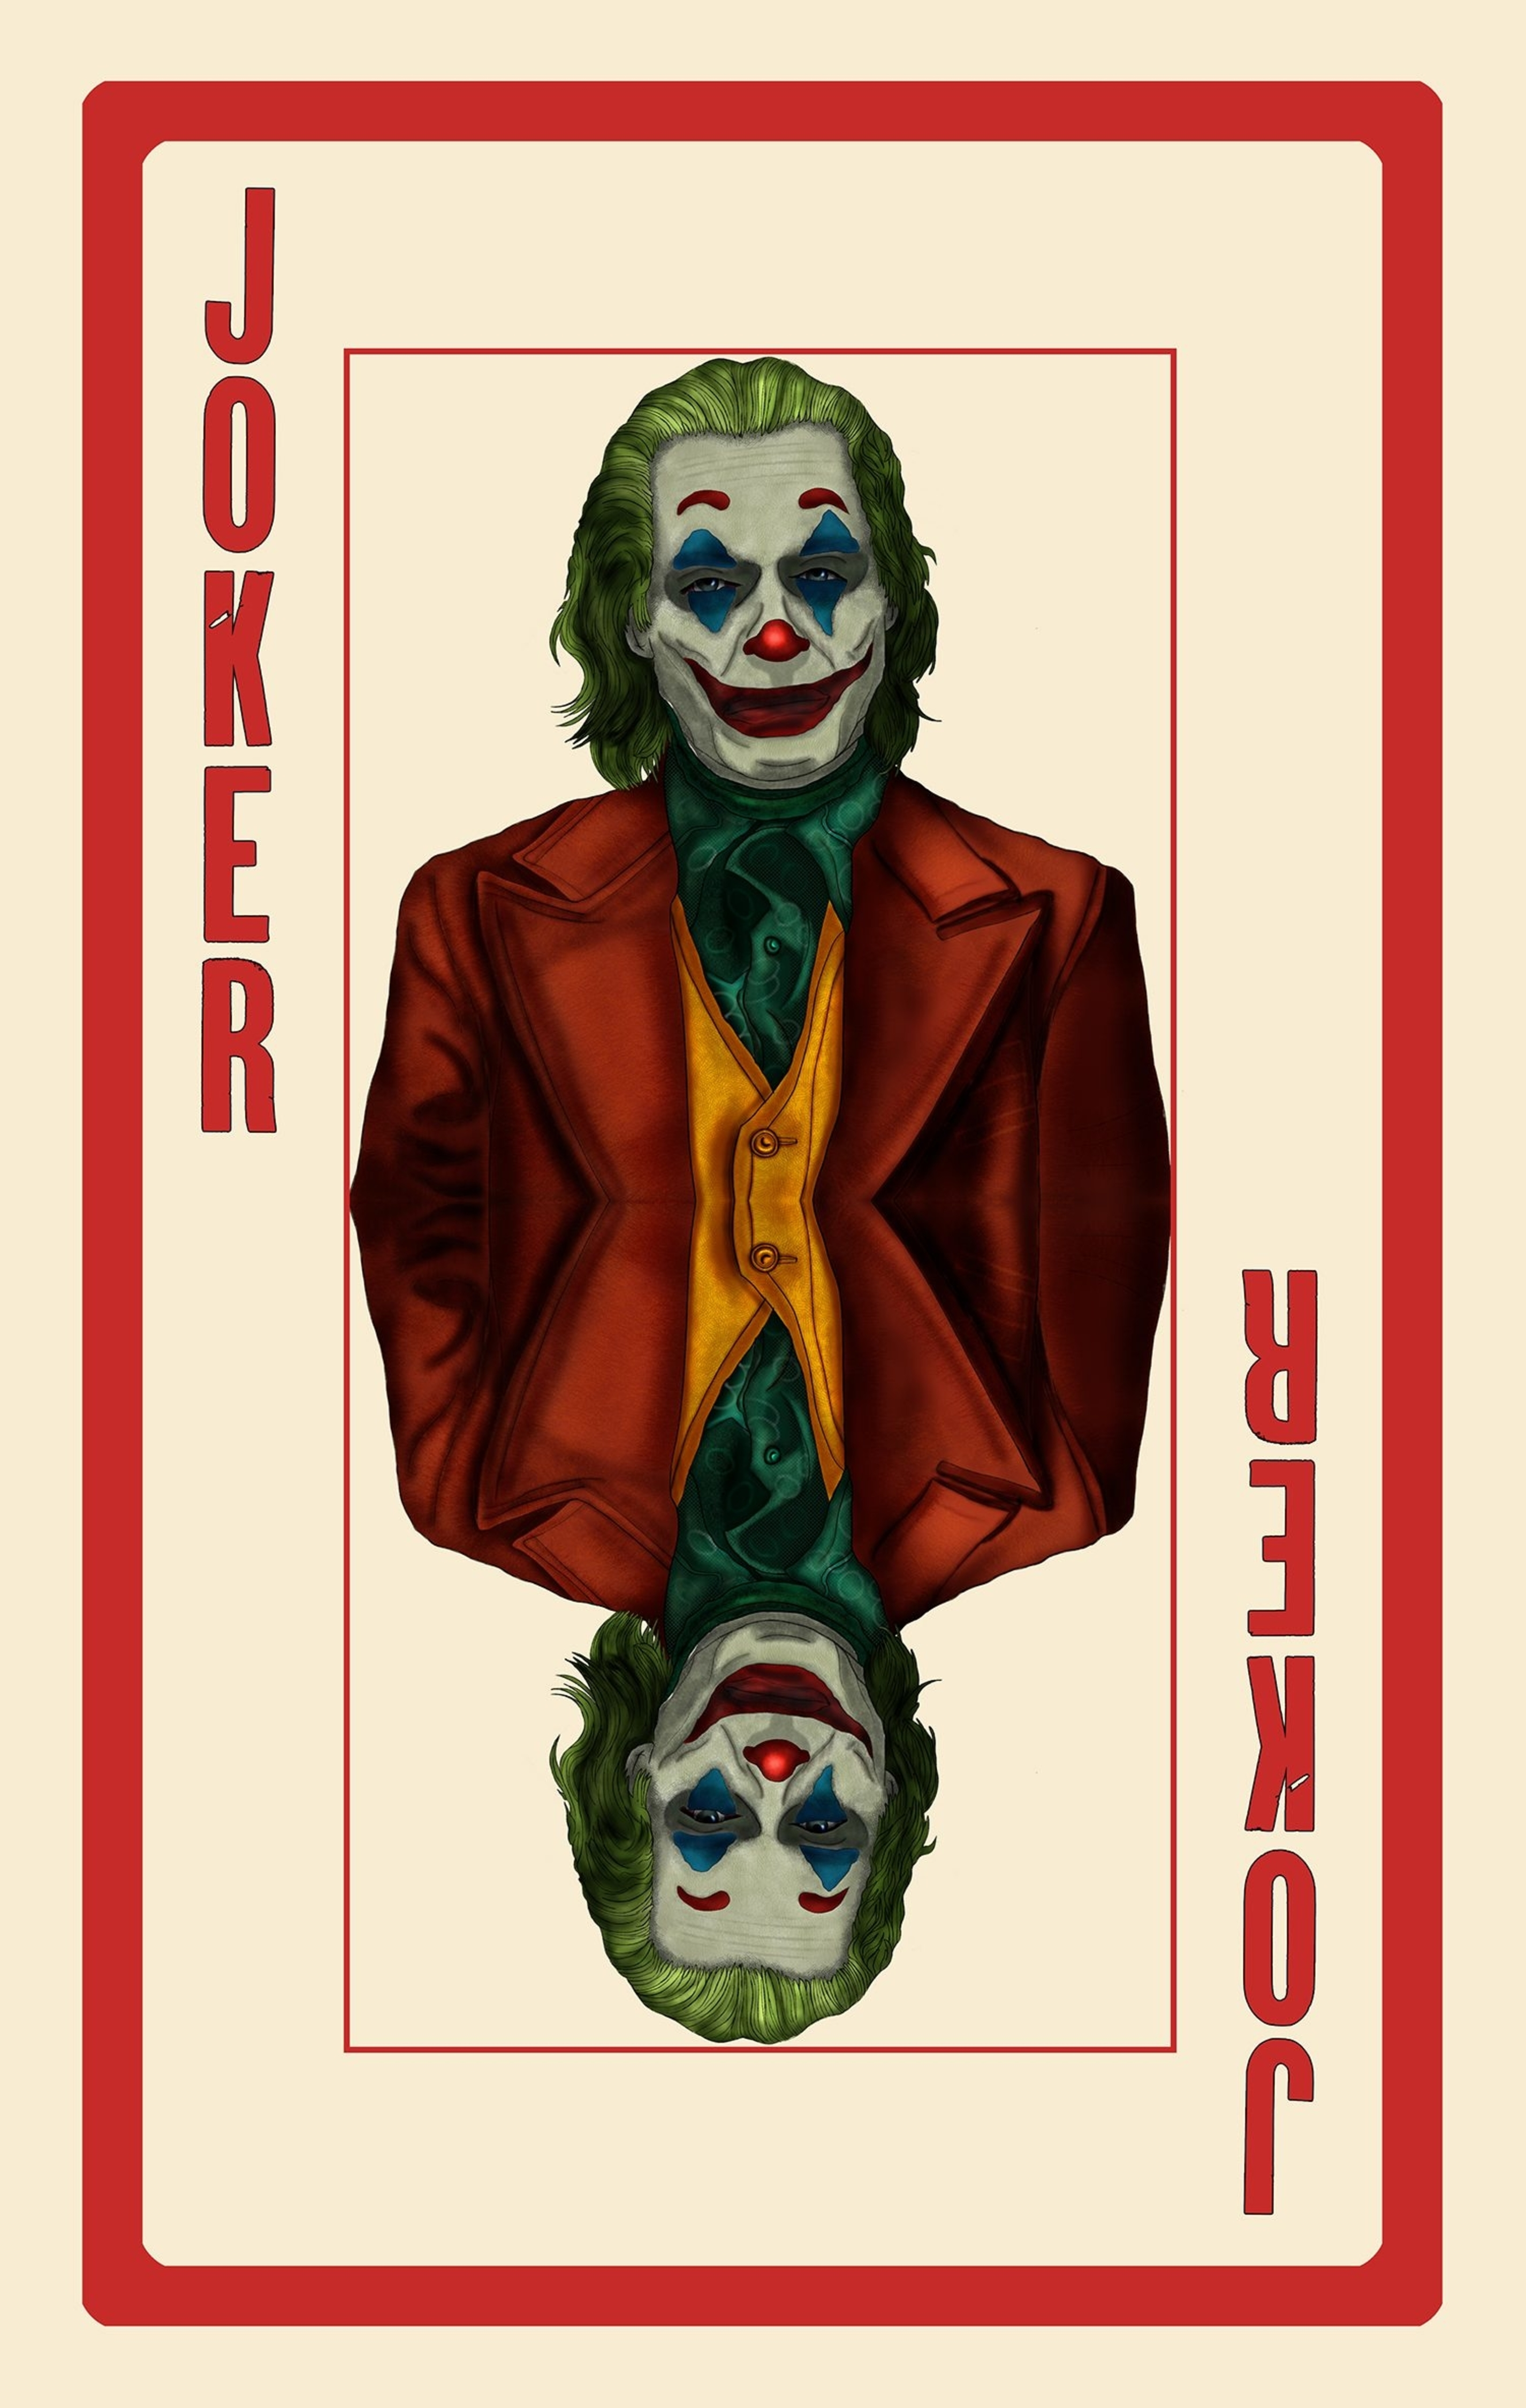 Joker (2019) [2851 4500] by Too Many Chads Joker poster